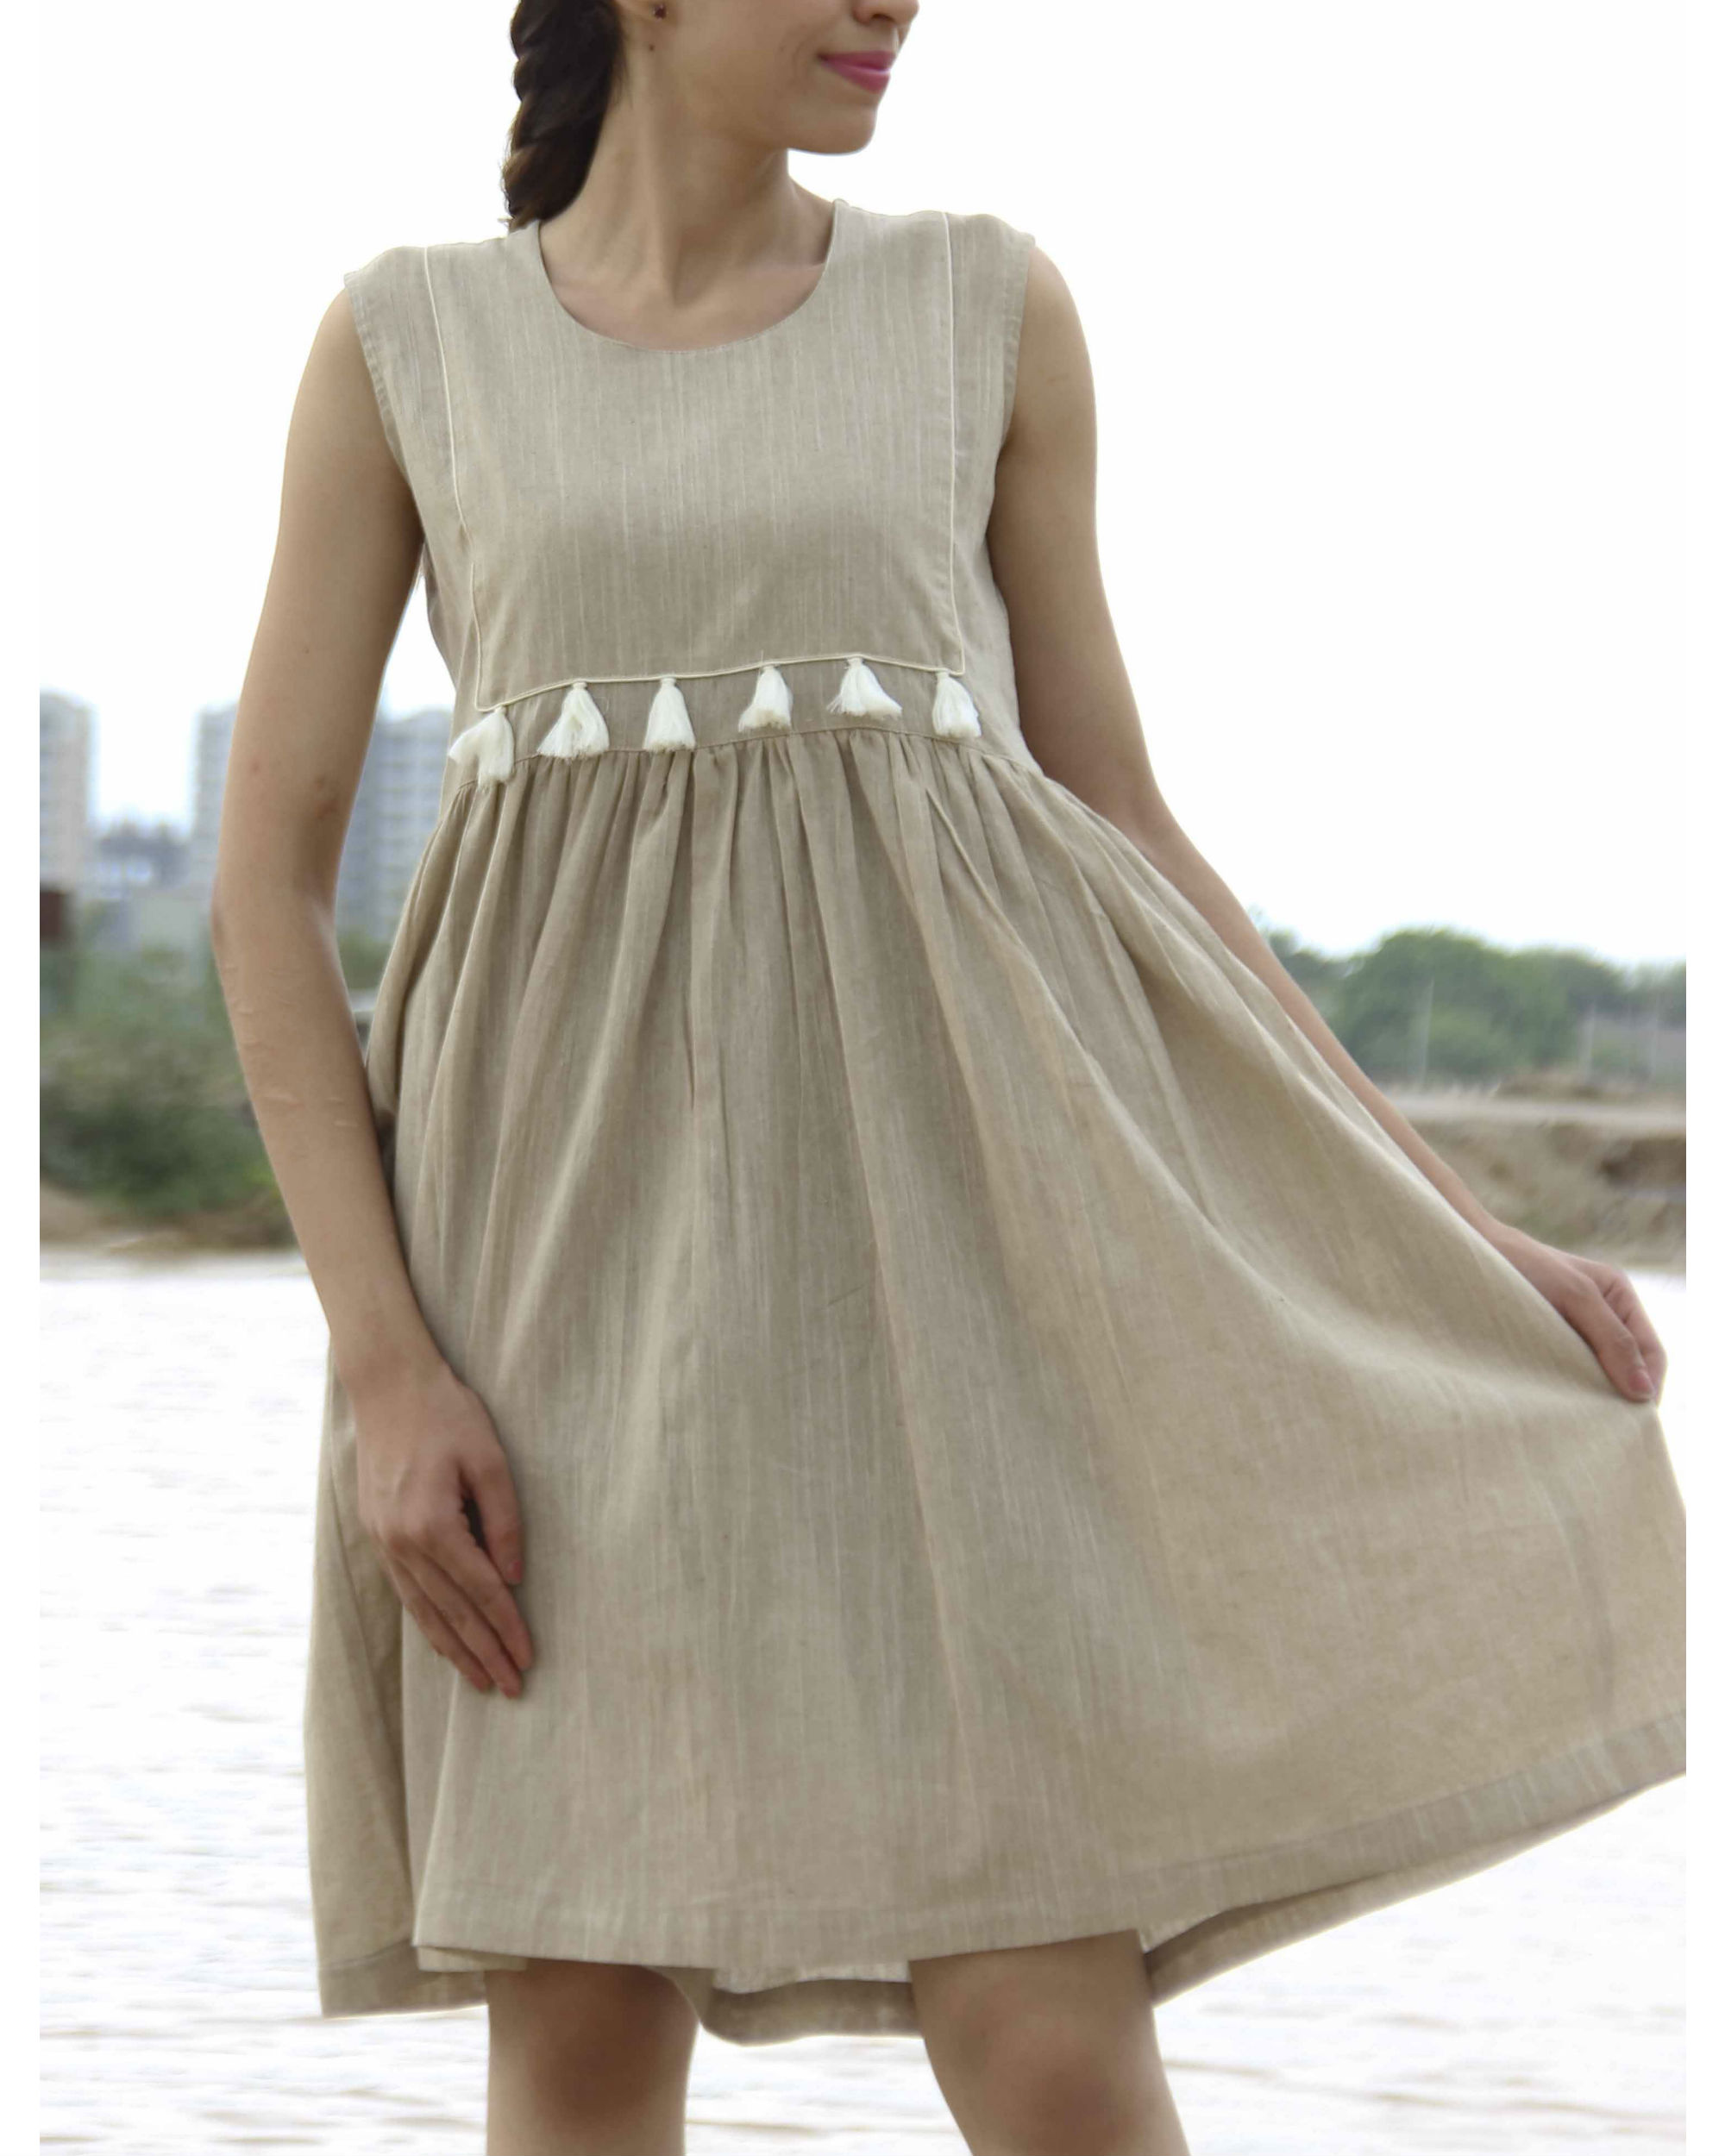 Mud tasseled dress